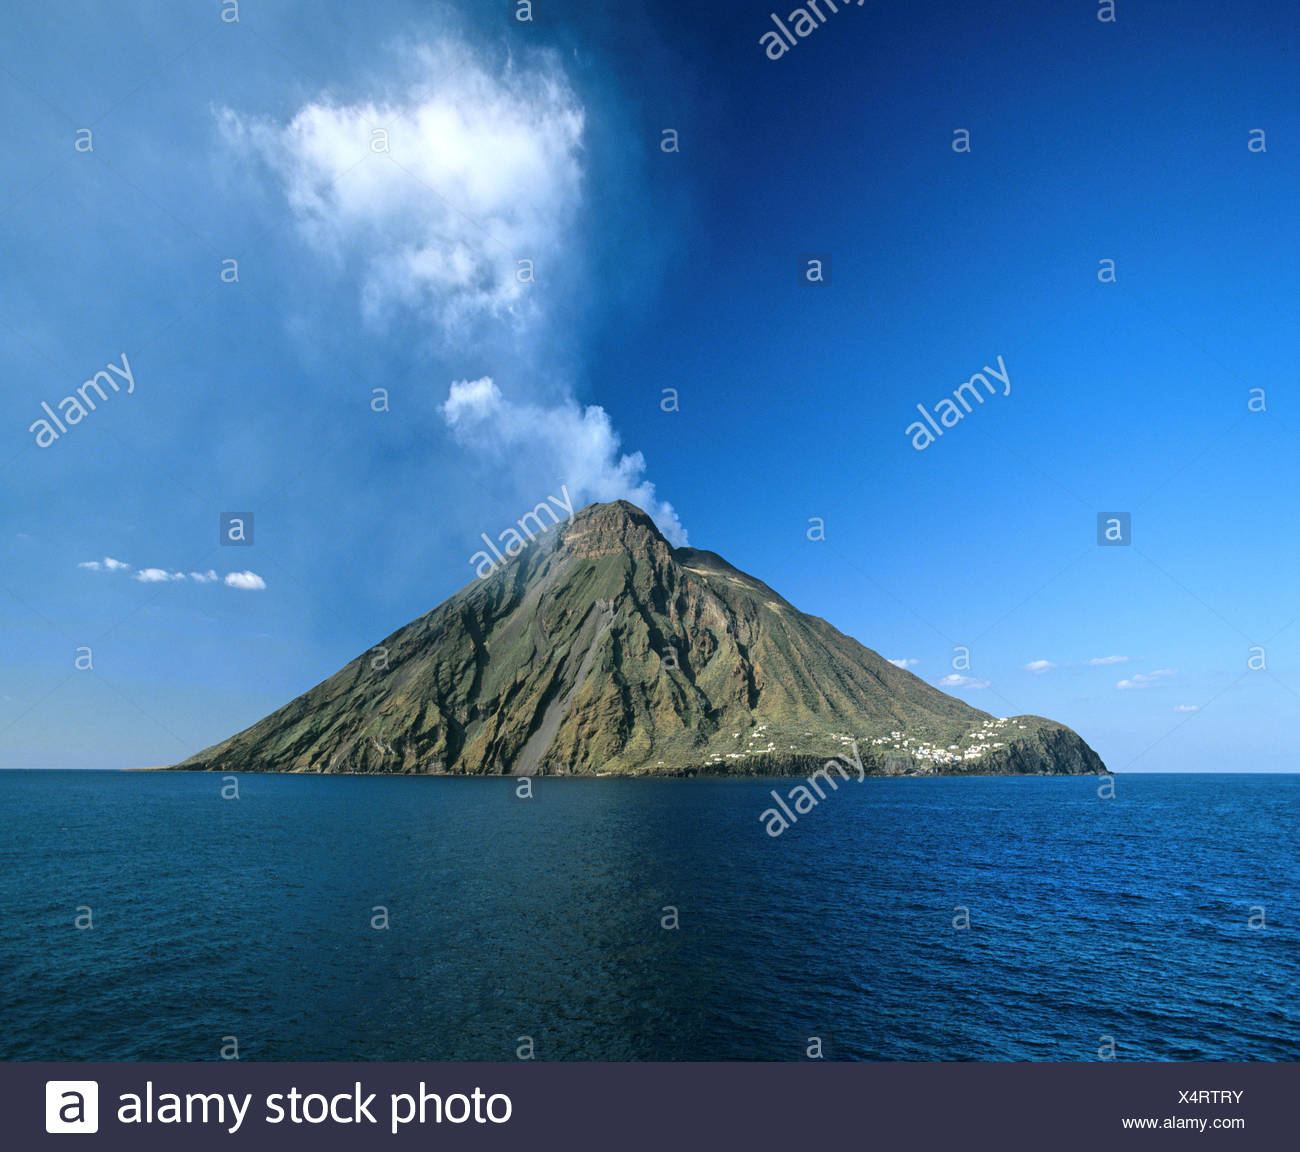 Stromboli Island, volcano, eruption, clouds of ash, Aeolian Islands, Sicily, Italy - Stock Image